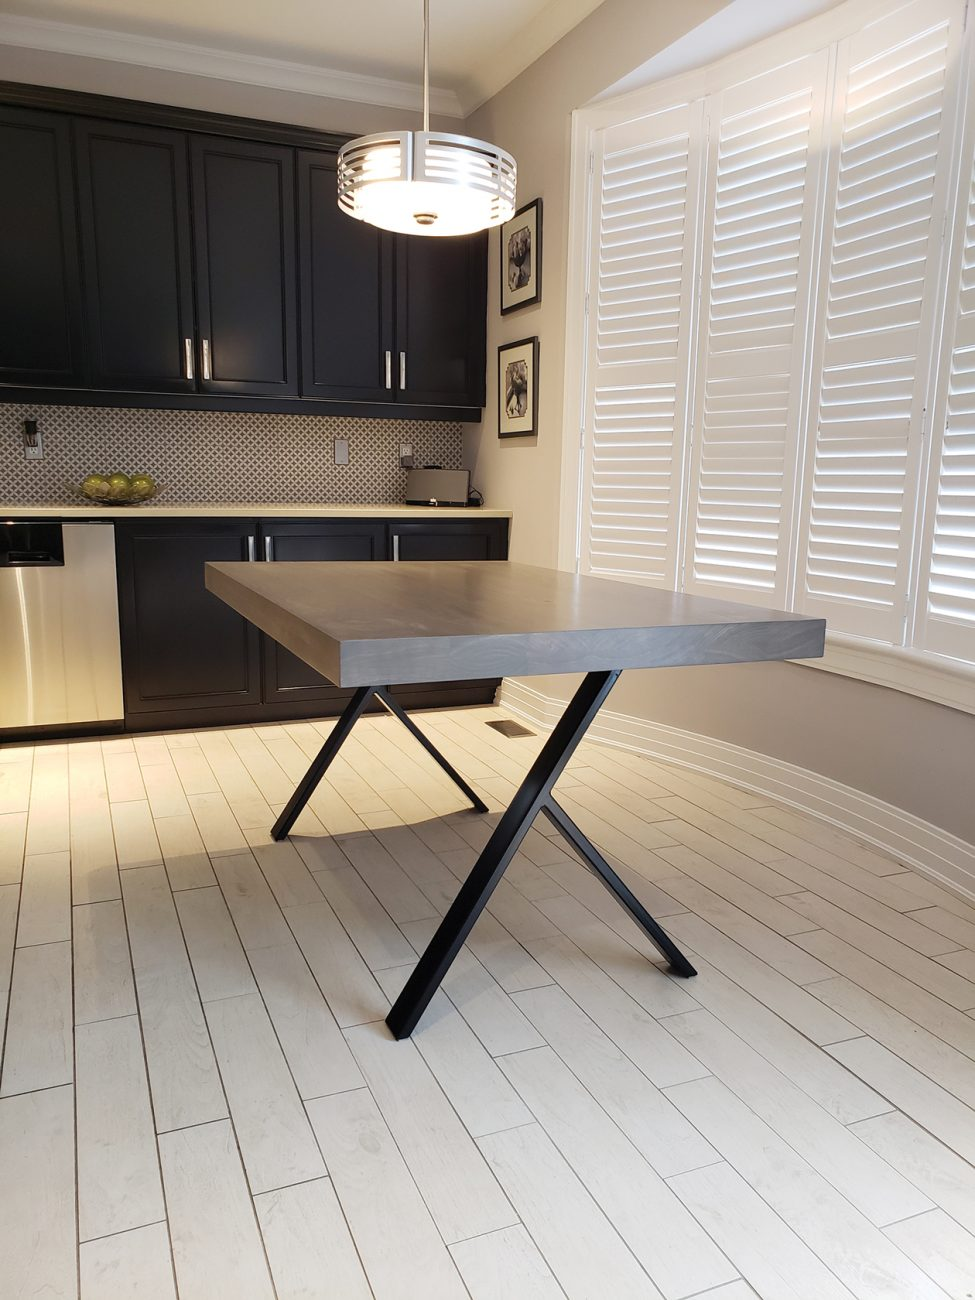 A table made by Maker House with the upside-down Y-legs.